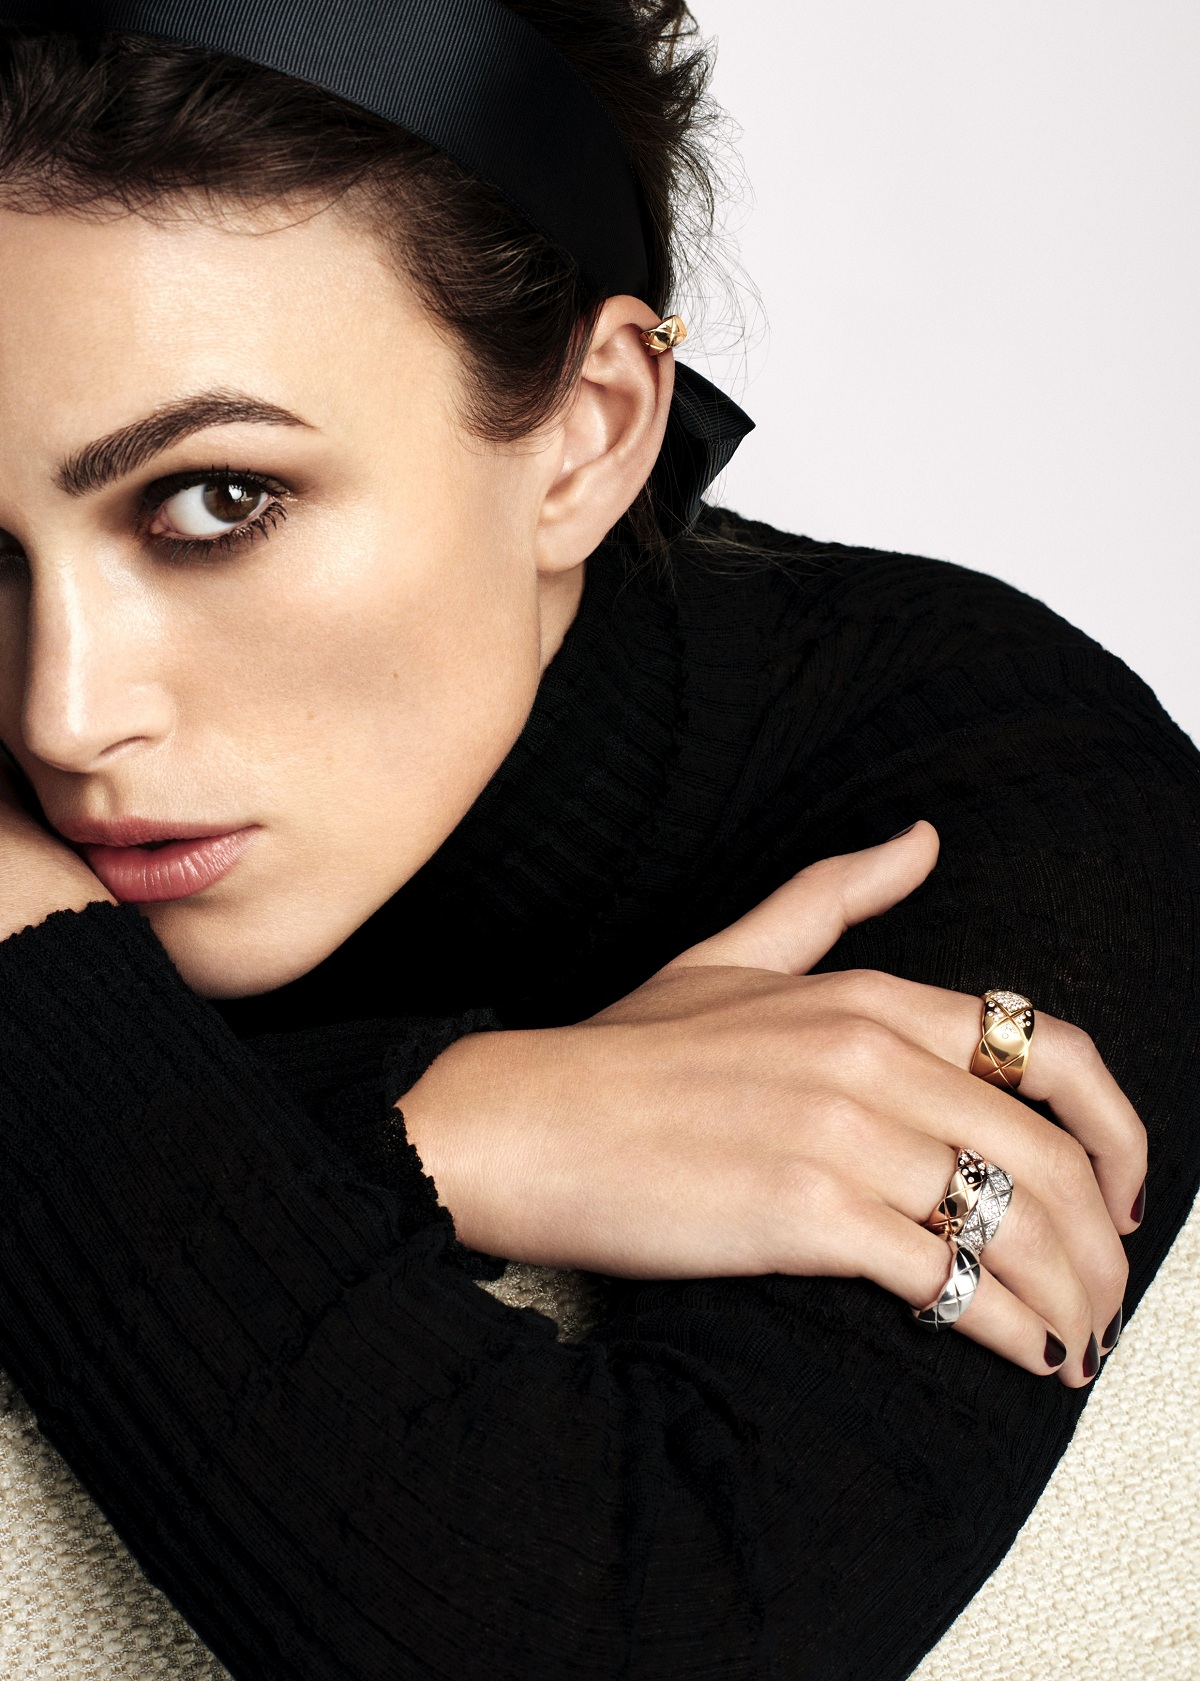 KEIRA KNGHTLEY Chanel COCO CRUSH Fashionela